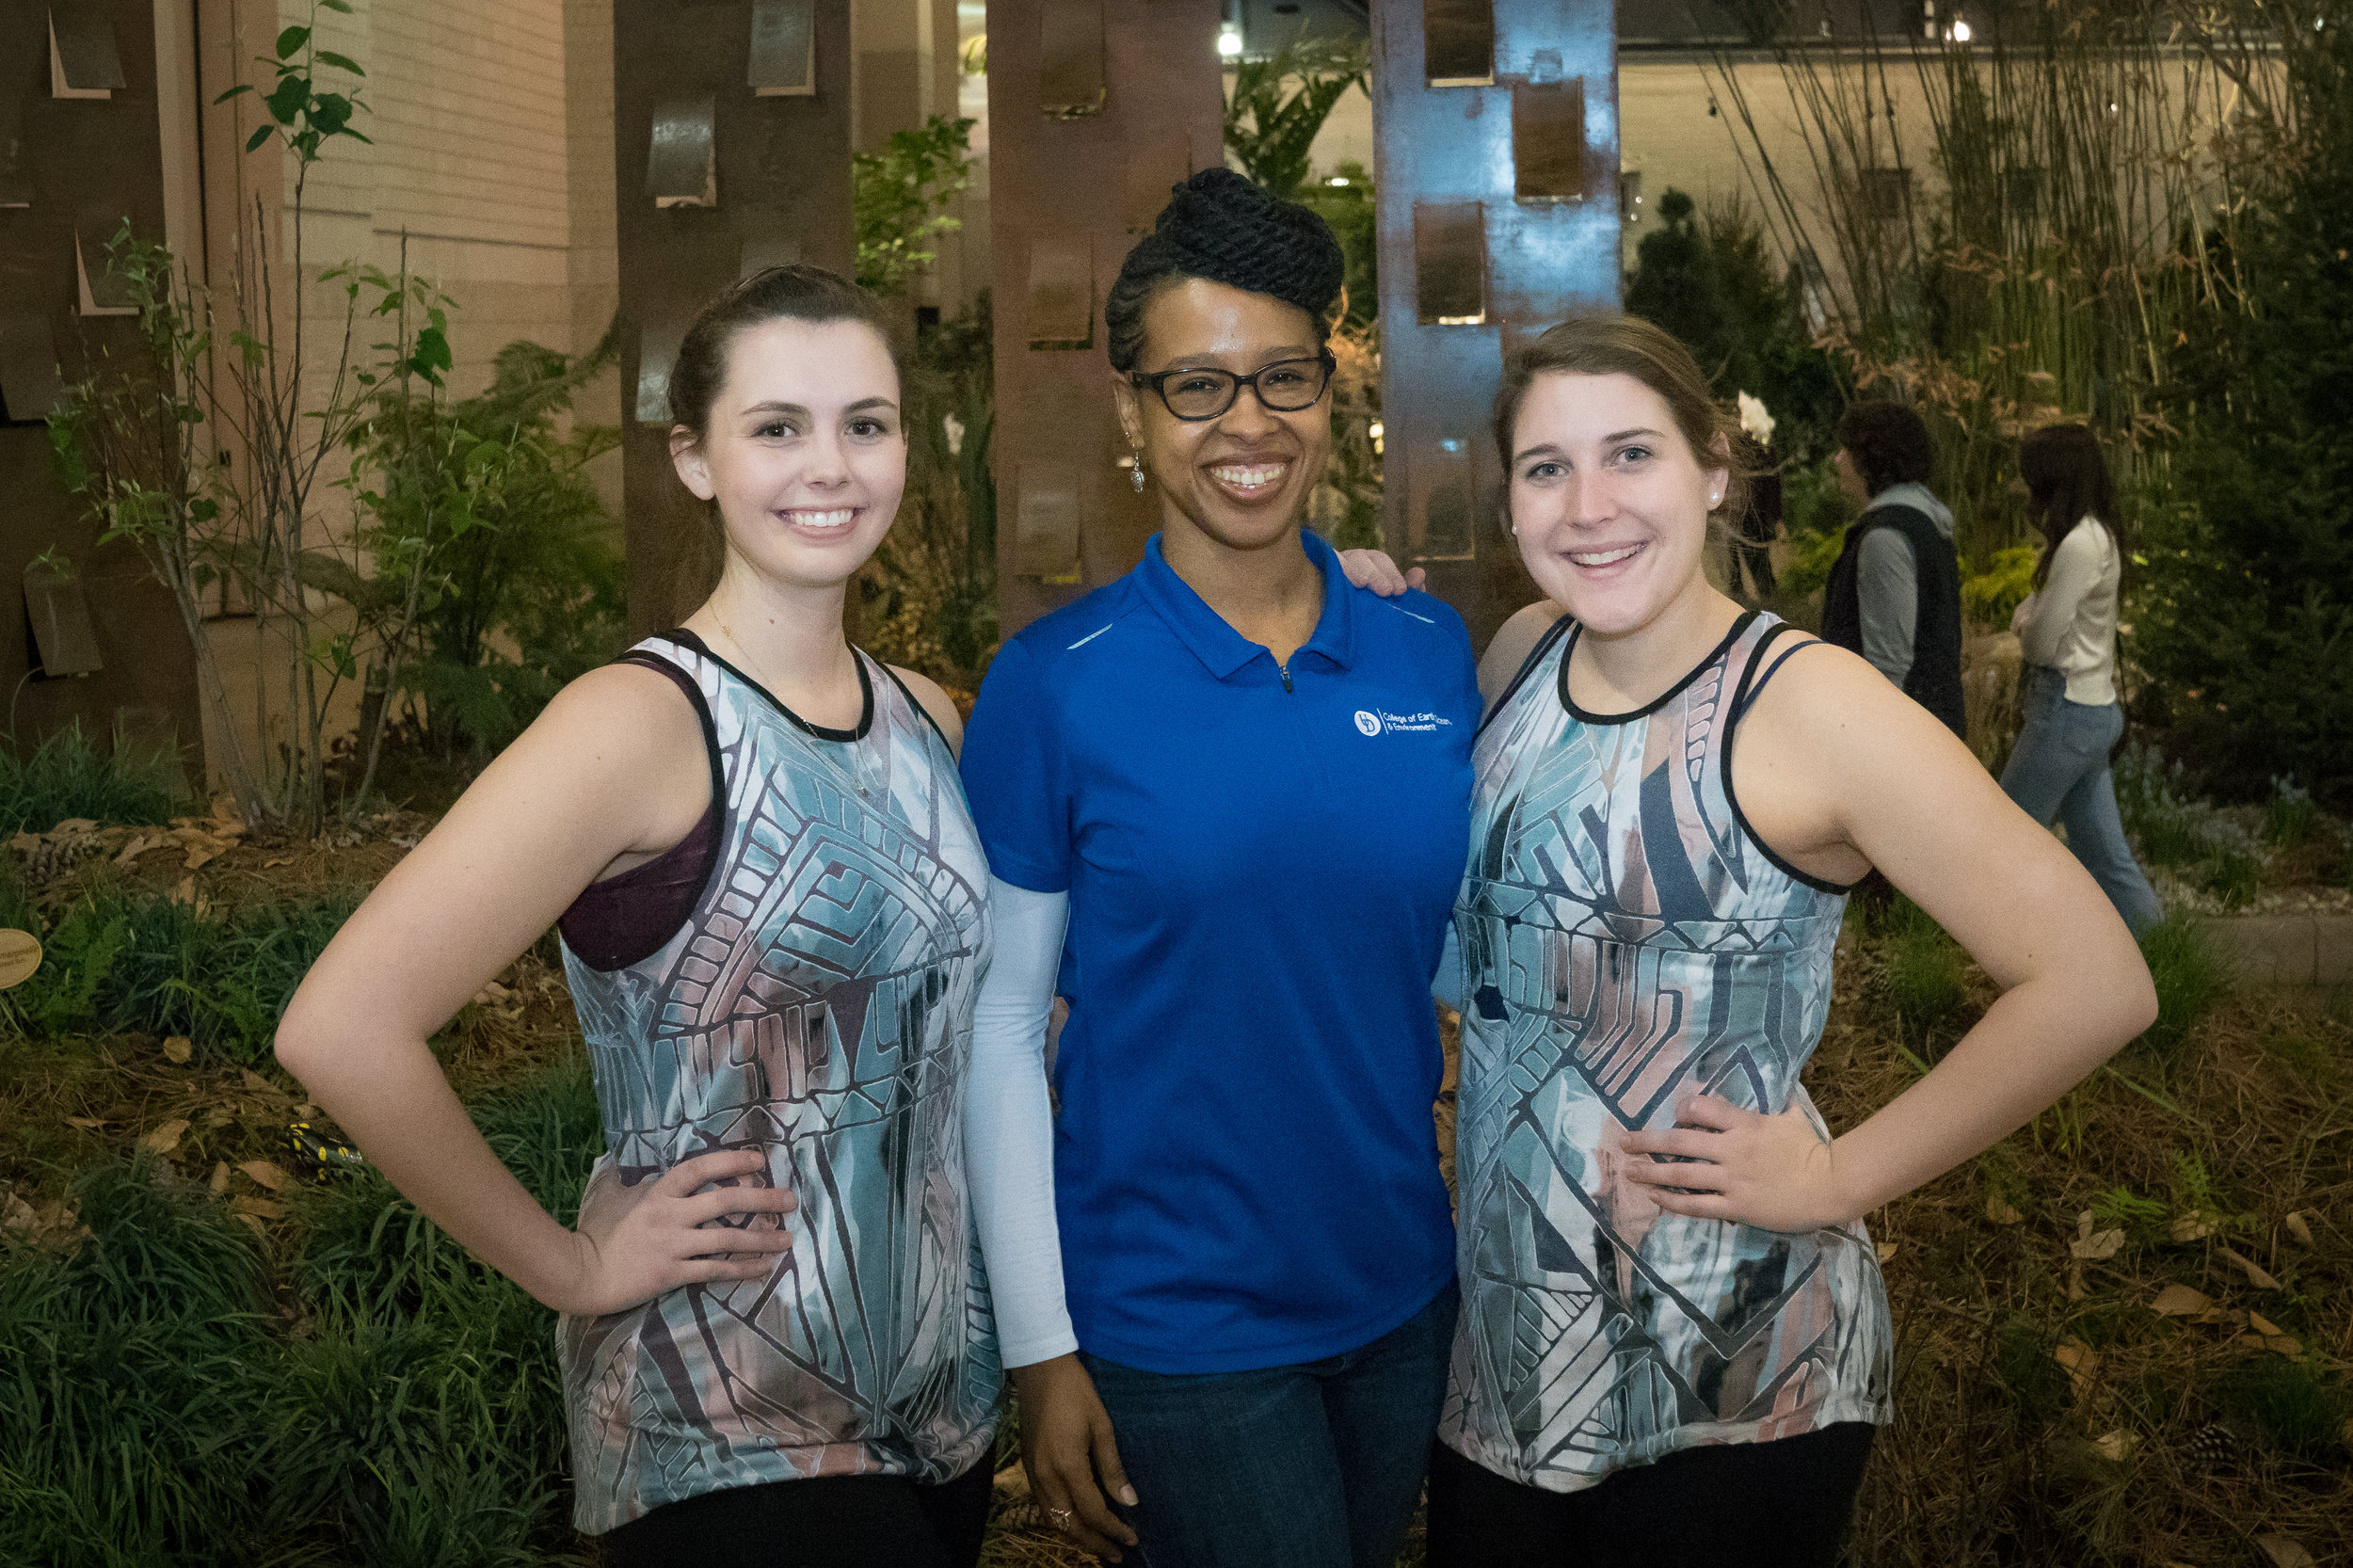 Jame McCray with two dancers at the Philadelphia Flower Show.